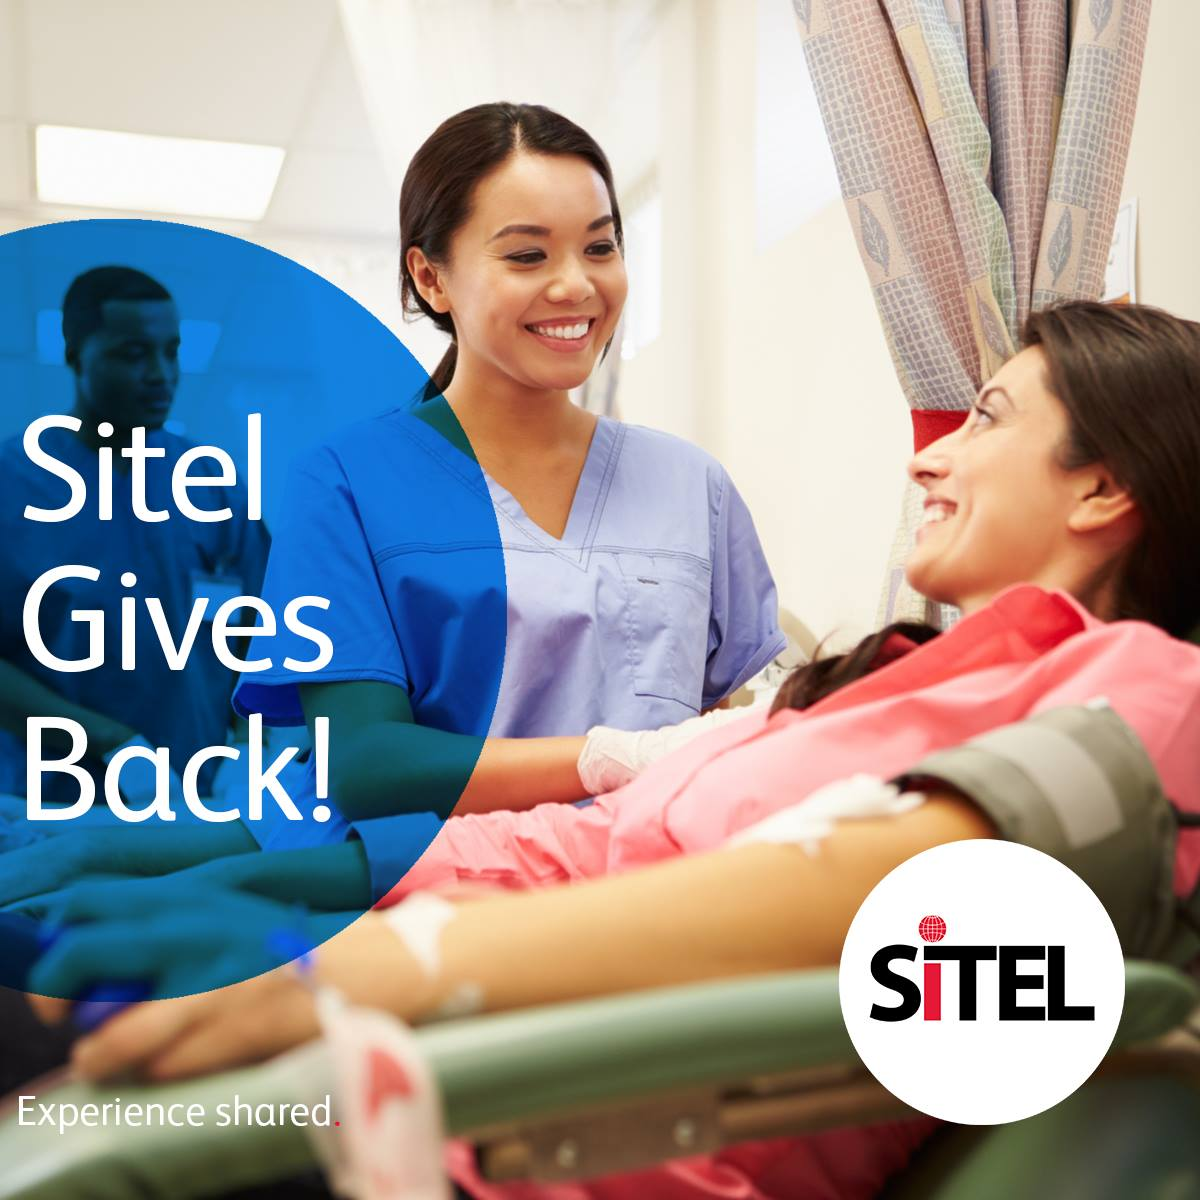 So proud of the Nicaragua team - one of the many examples of how Sitel teams across the globe give back! #WhySitel https://goo.gl/KqvYXXo